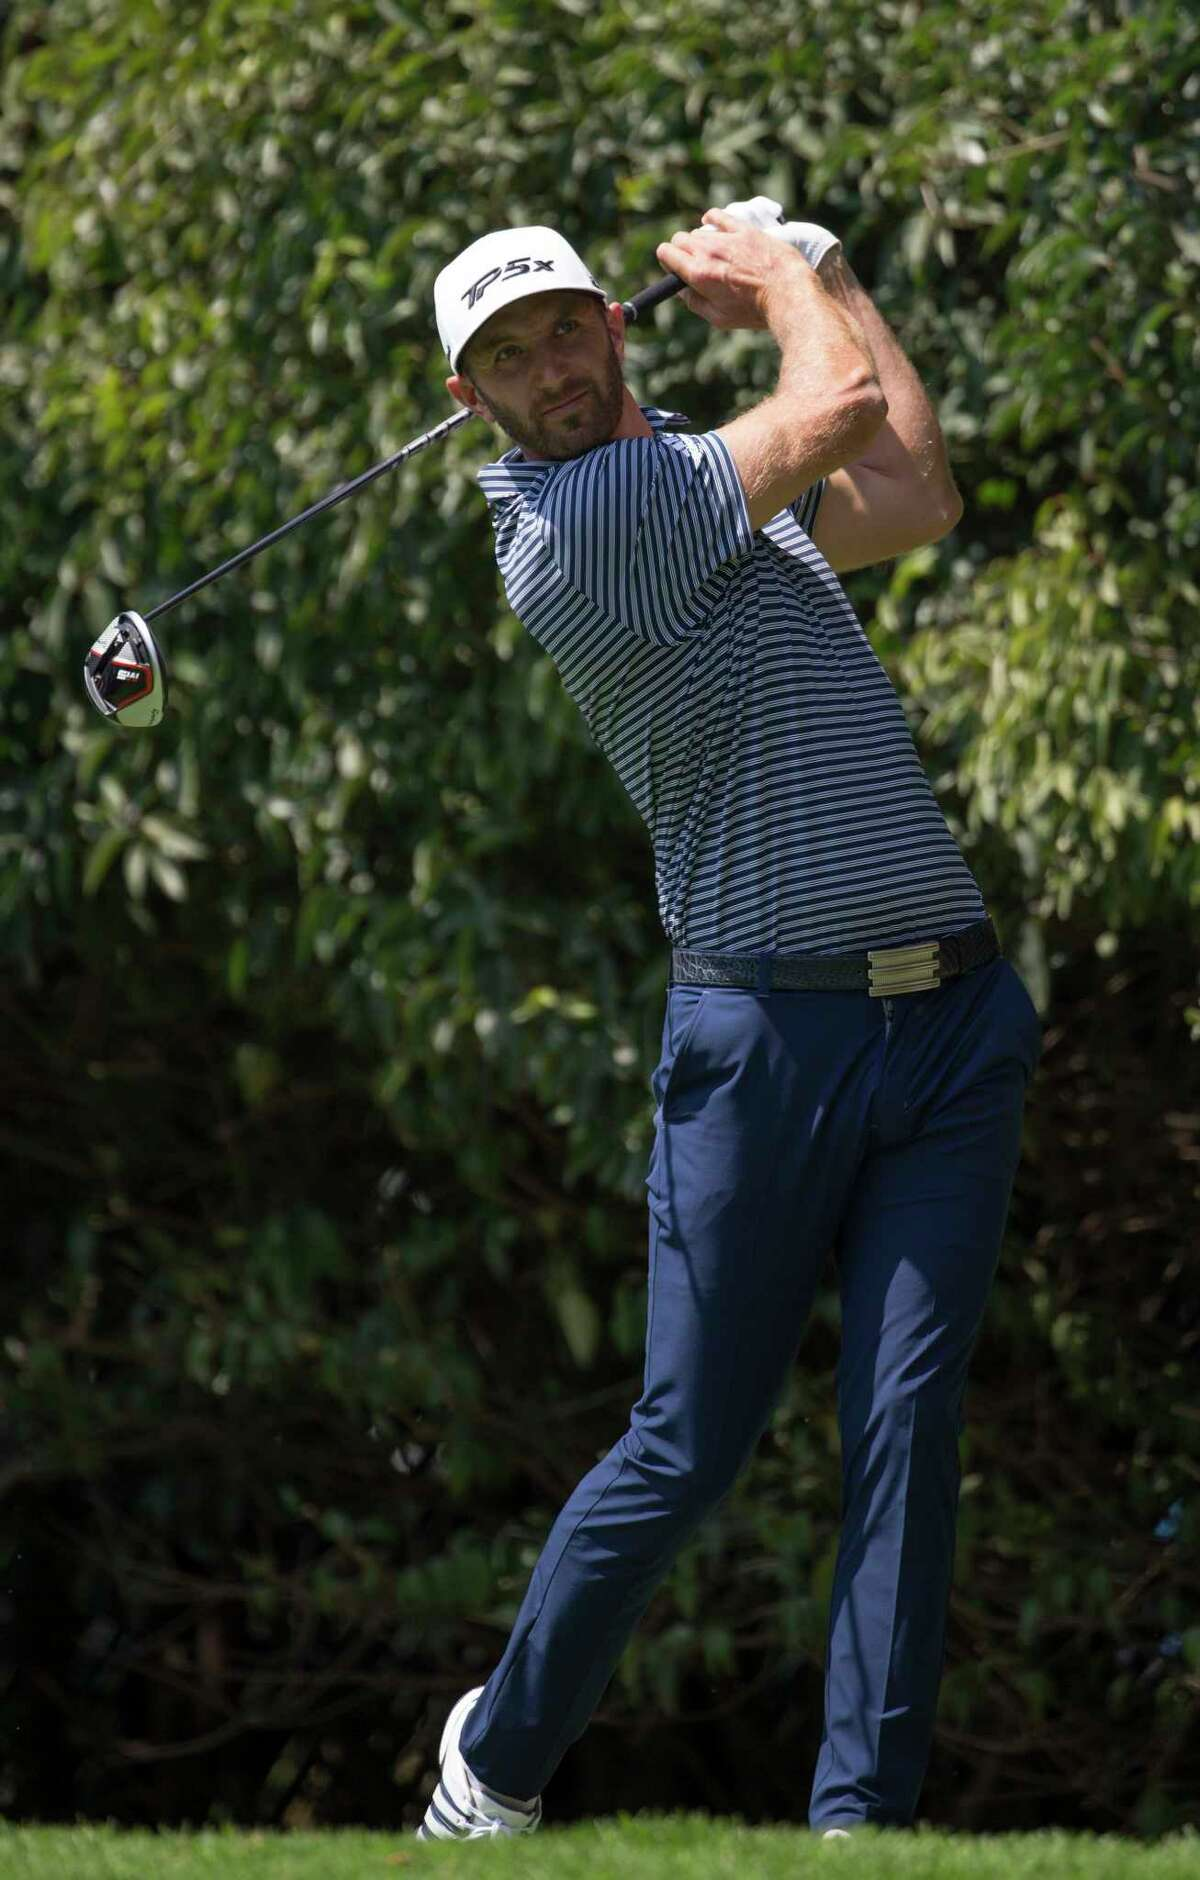 U.S. golfer Dustin Johnson watches his ball in the second hole during the WGC-Mexico Championship at the Chapultepec Golf Club in Mexico City, Sunday, Feb. 24, 2019. (AP Photo/Christian Palma)